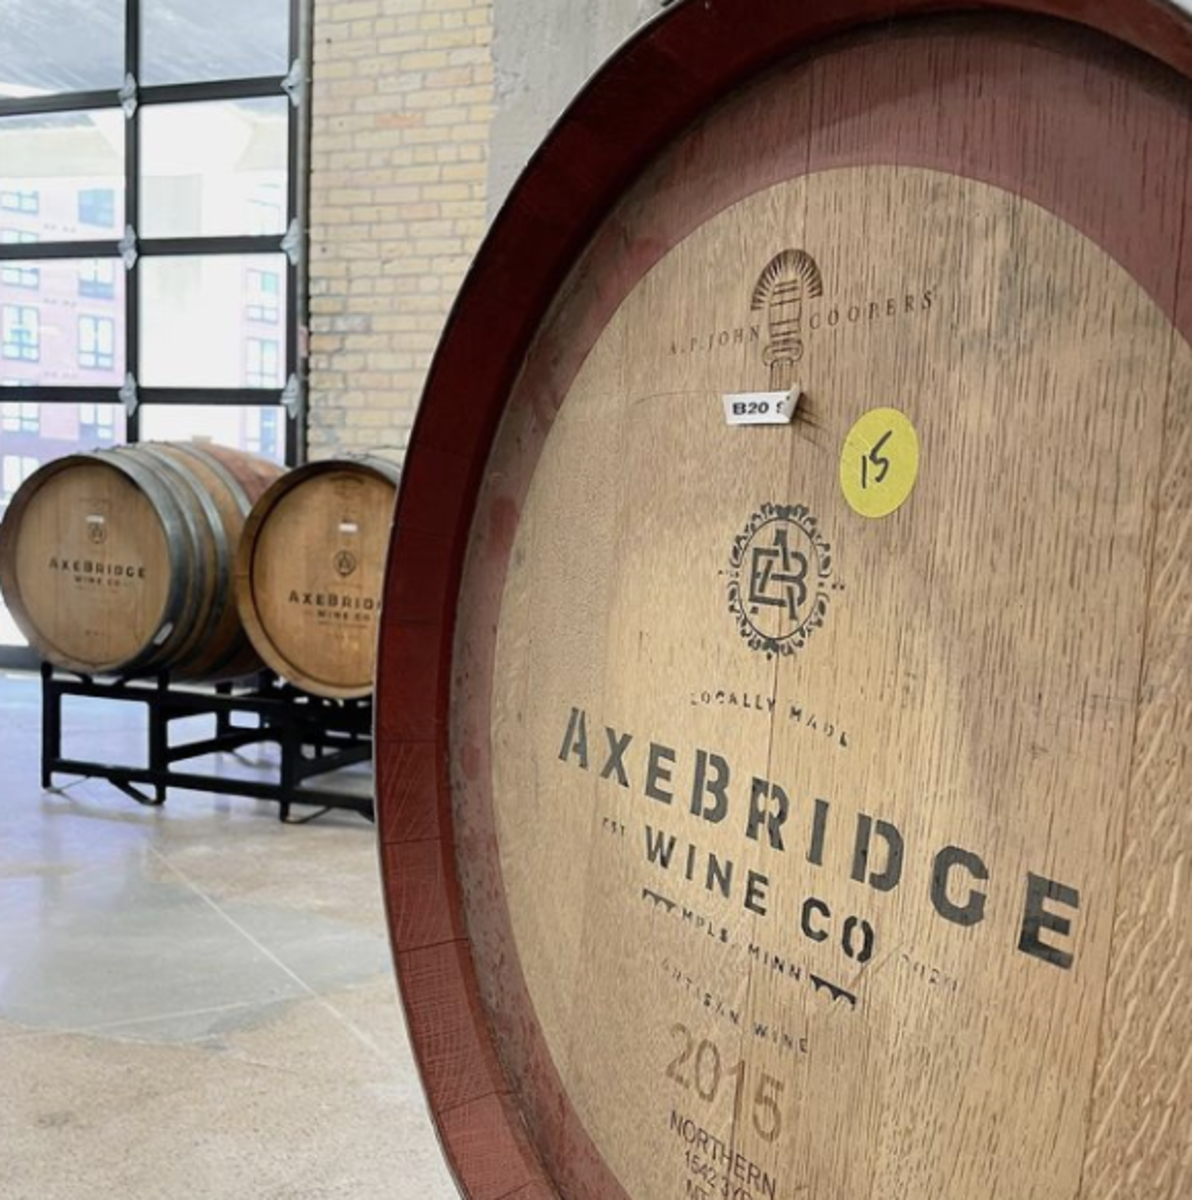 Full production winery set to open in Minneapolis this month